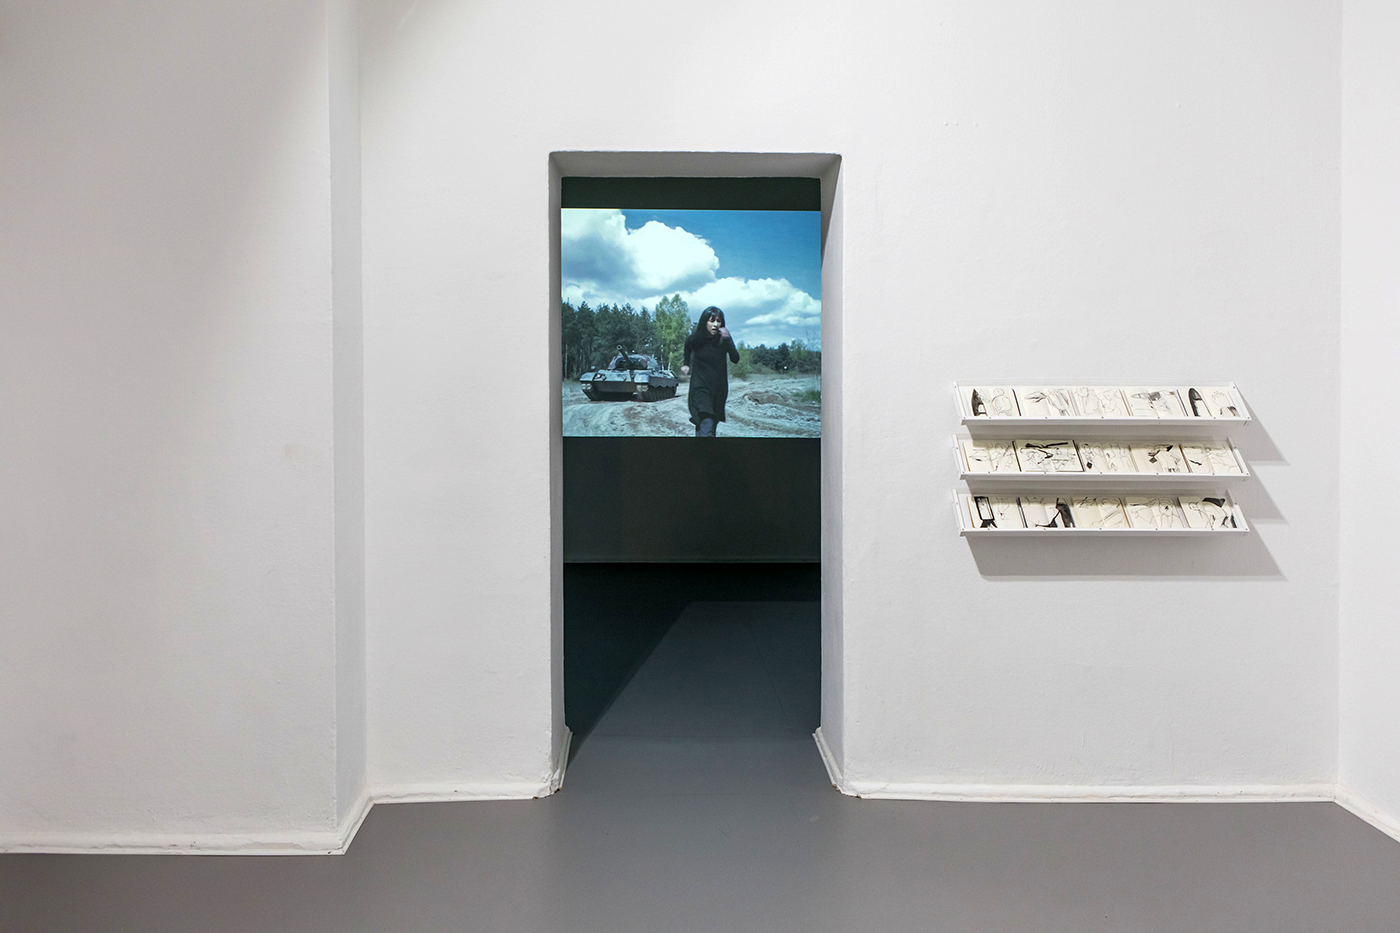 Ausstellungsansicht »Up in Arms«, Kunstraum Kreuzberg/Bethanien 2019, Photo: Julian van Dieken